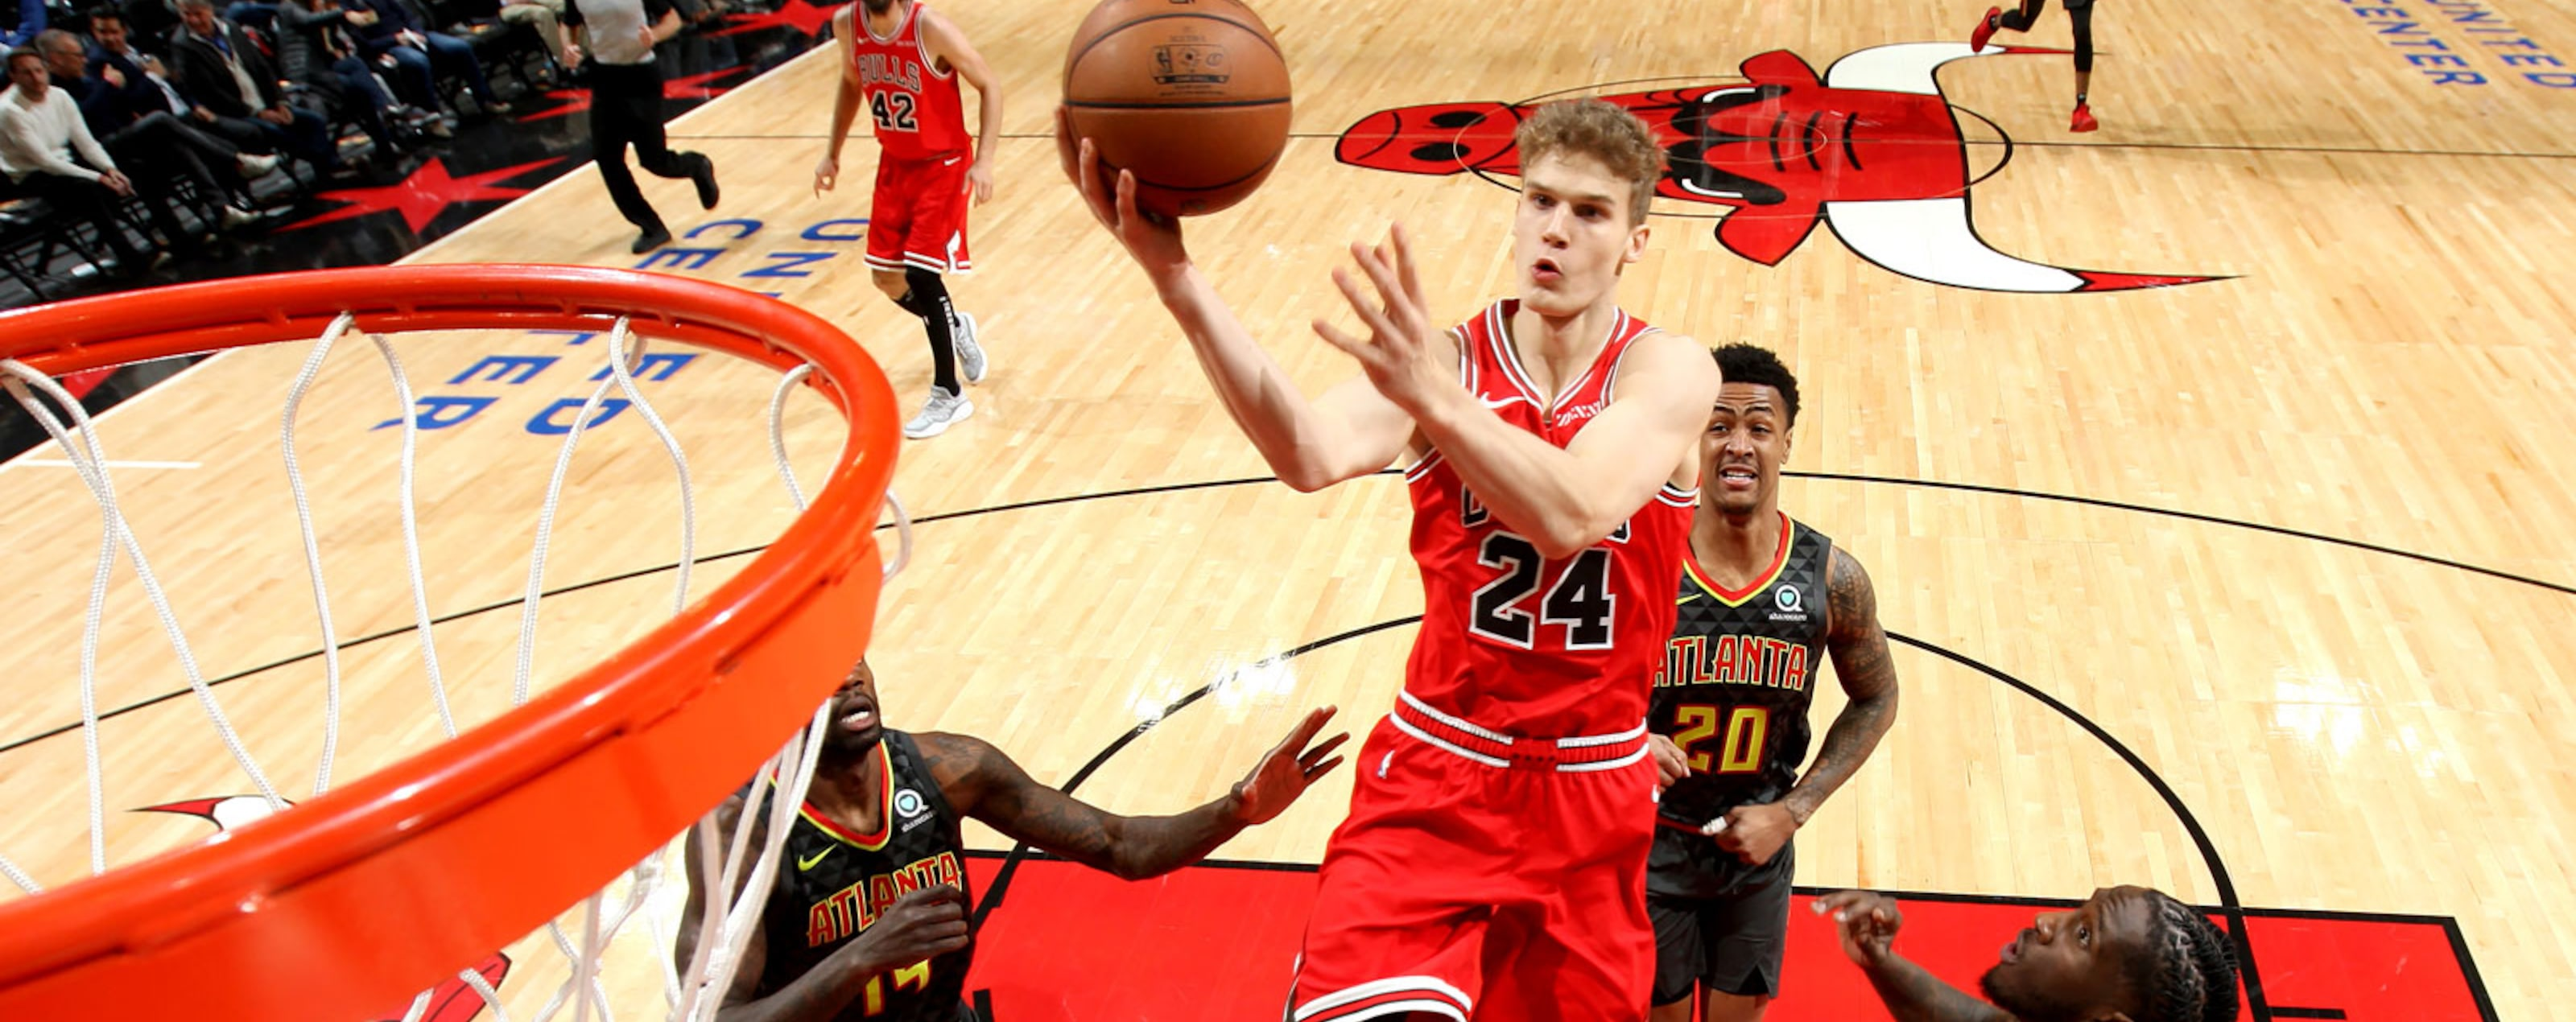 Lauri Markkaen #24 of the Chicago Bulls attempts a layup against the Atlanta Hawks